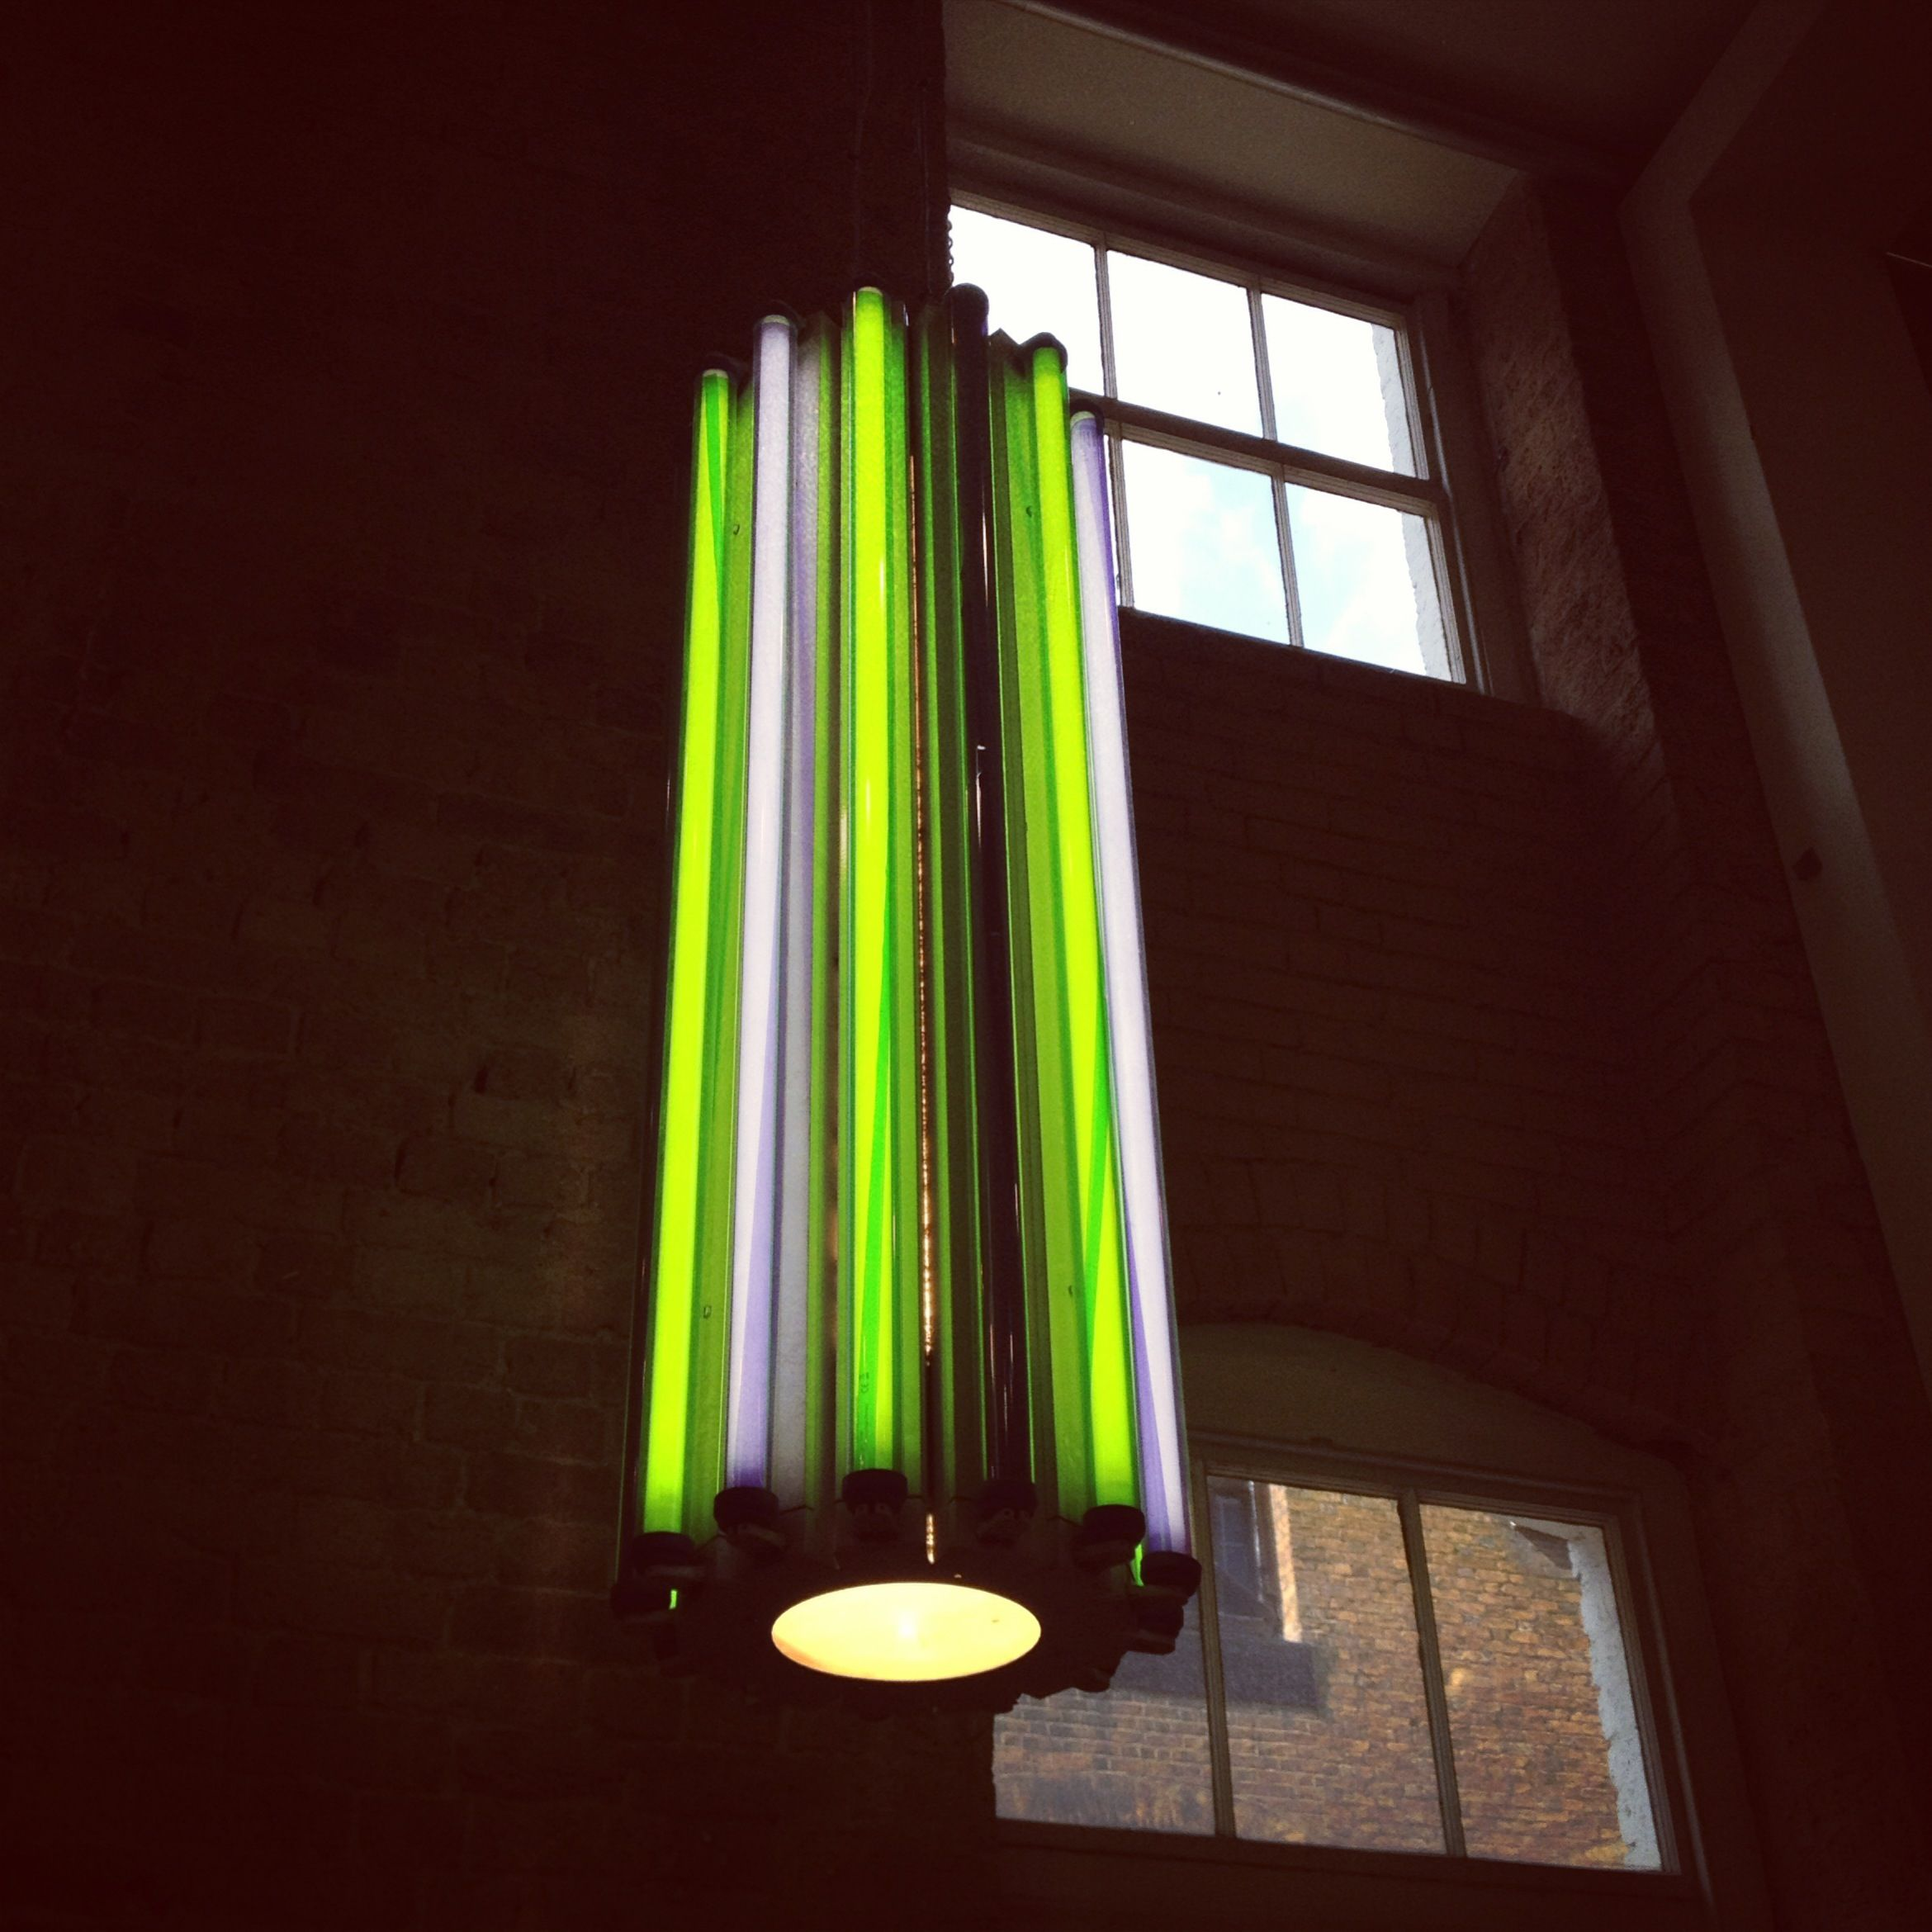 Wall Sconces Urban Outfitters: Fluorescent Lighting Covent Garden @ Urban Outfitters